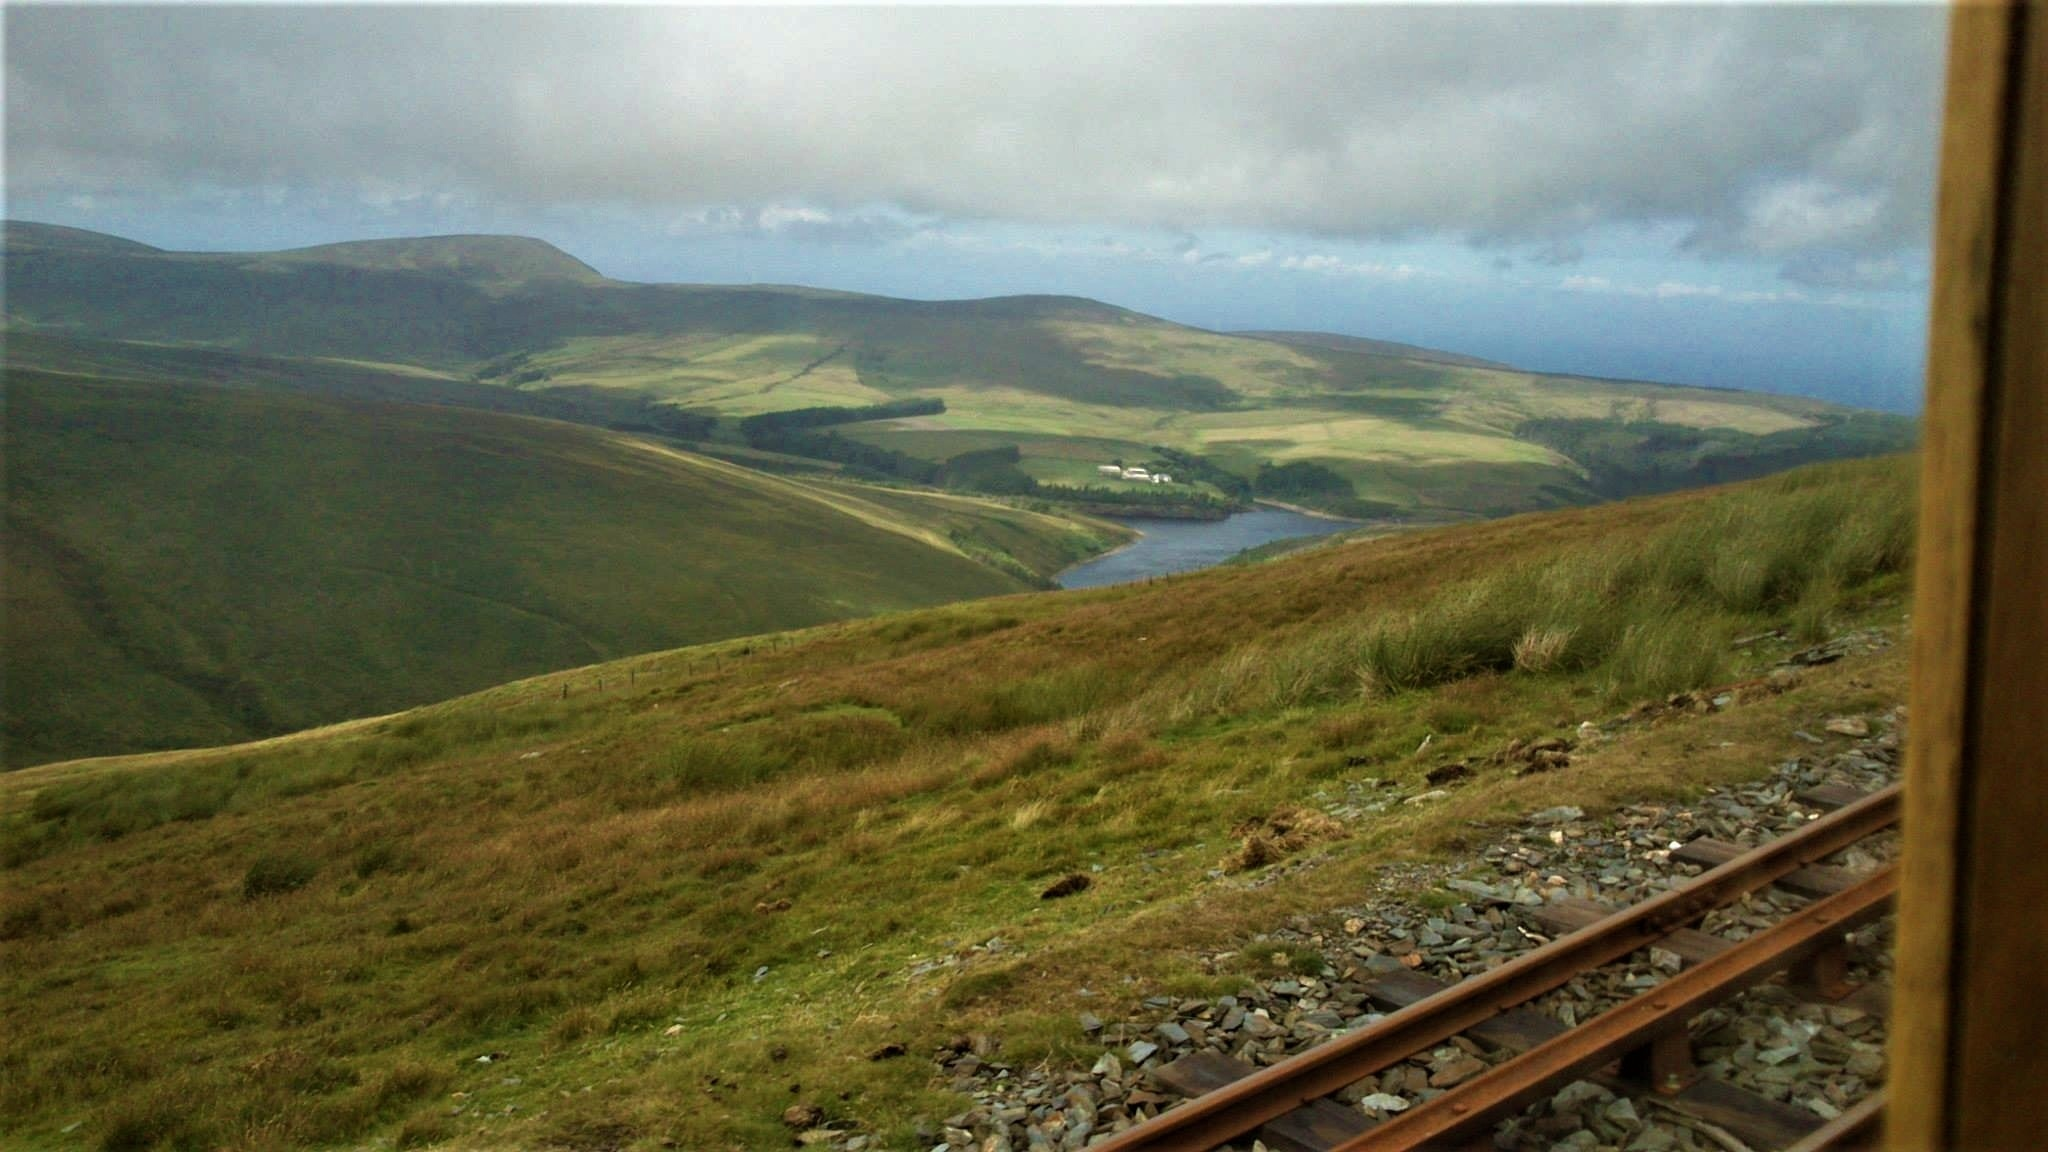 Snaefell, Laxey, Isle of Man